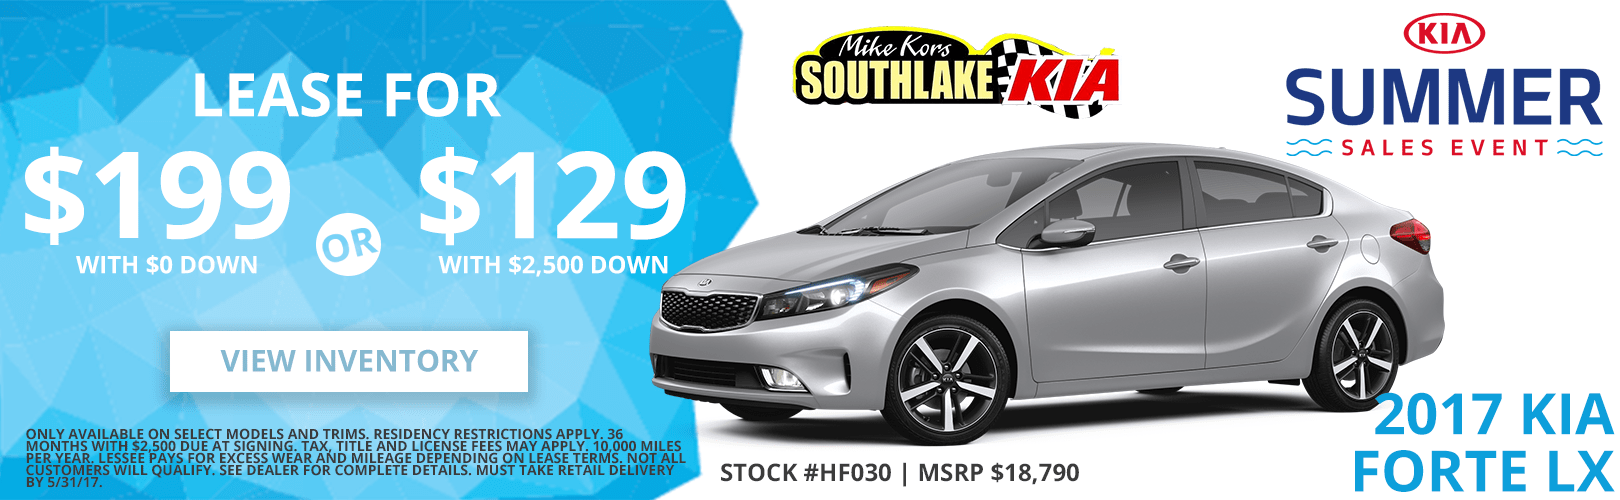 tampa optima lease m payment fl cars forte or plus soul st kia petersburg clearwater promotion blog friendly